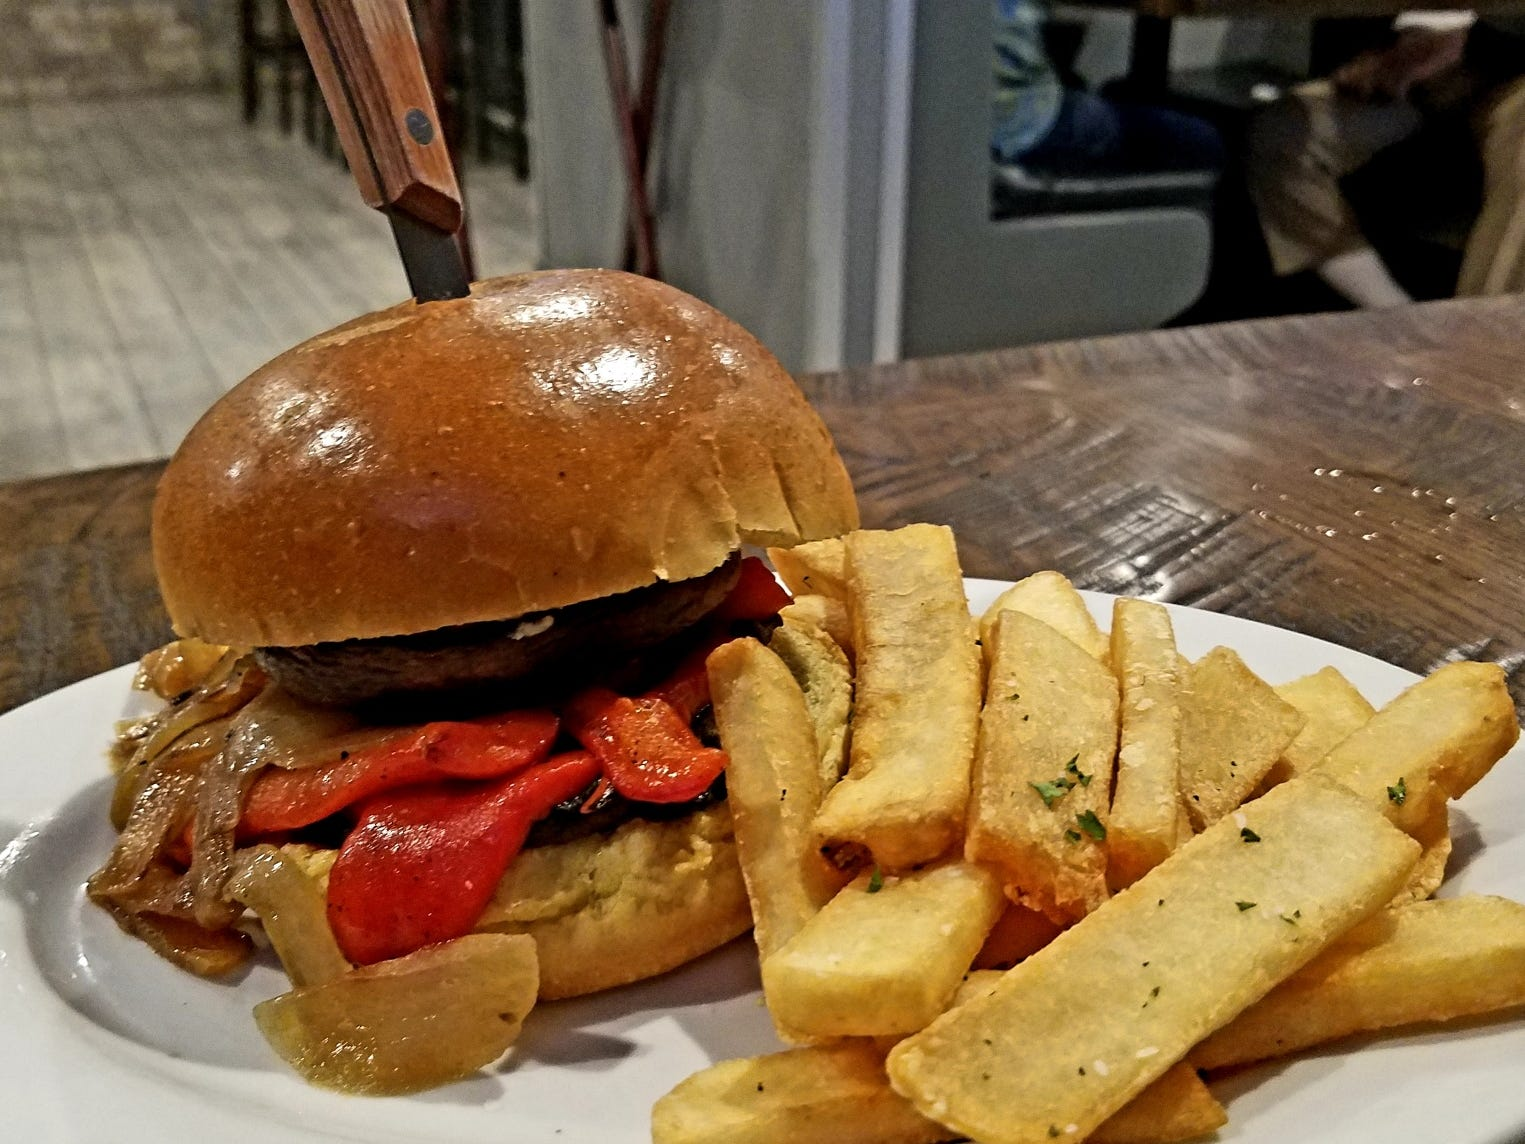 The farmers portobello burger is a brioche bun stuffed with a marinated portobello cap, sauteed onions, roasted red peppers and a smear of goat cheese served with  crispy seasoned steak fries.